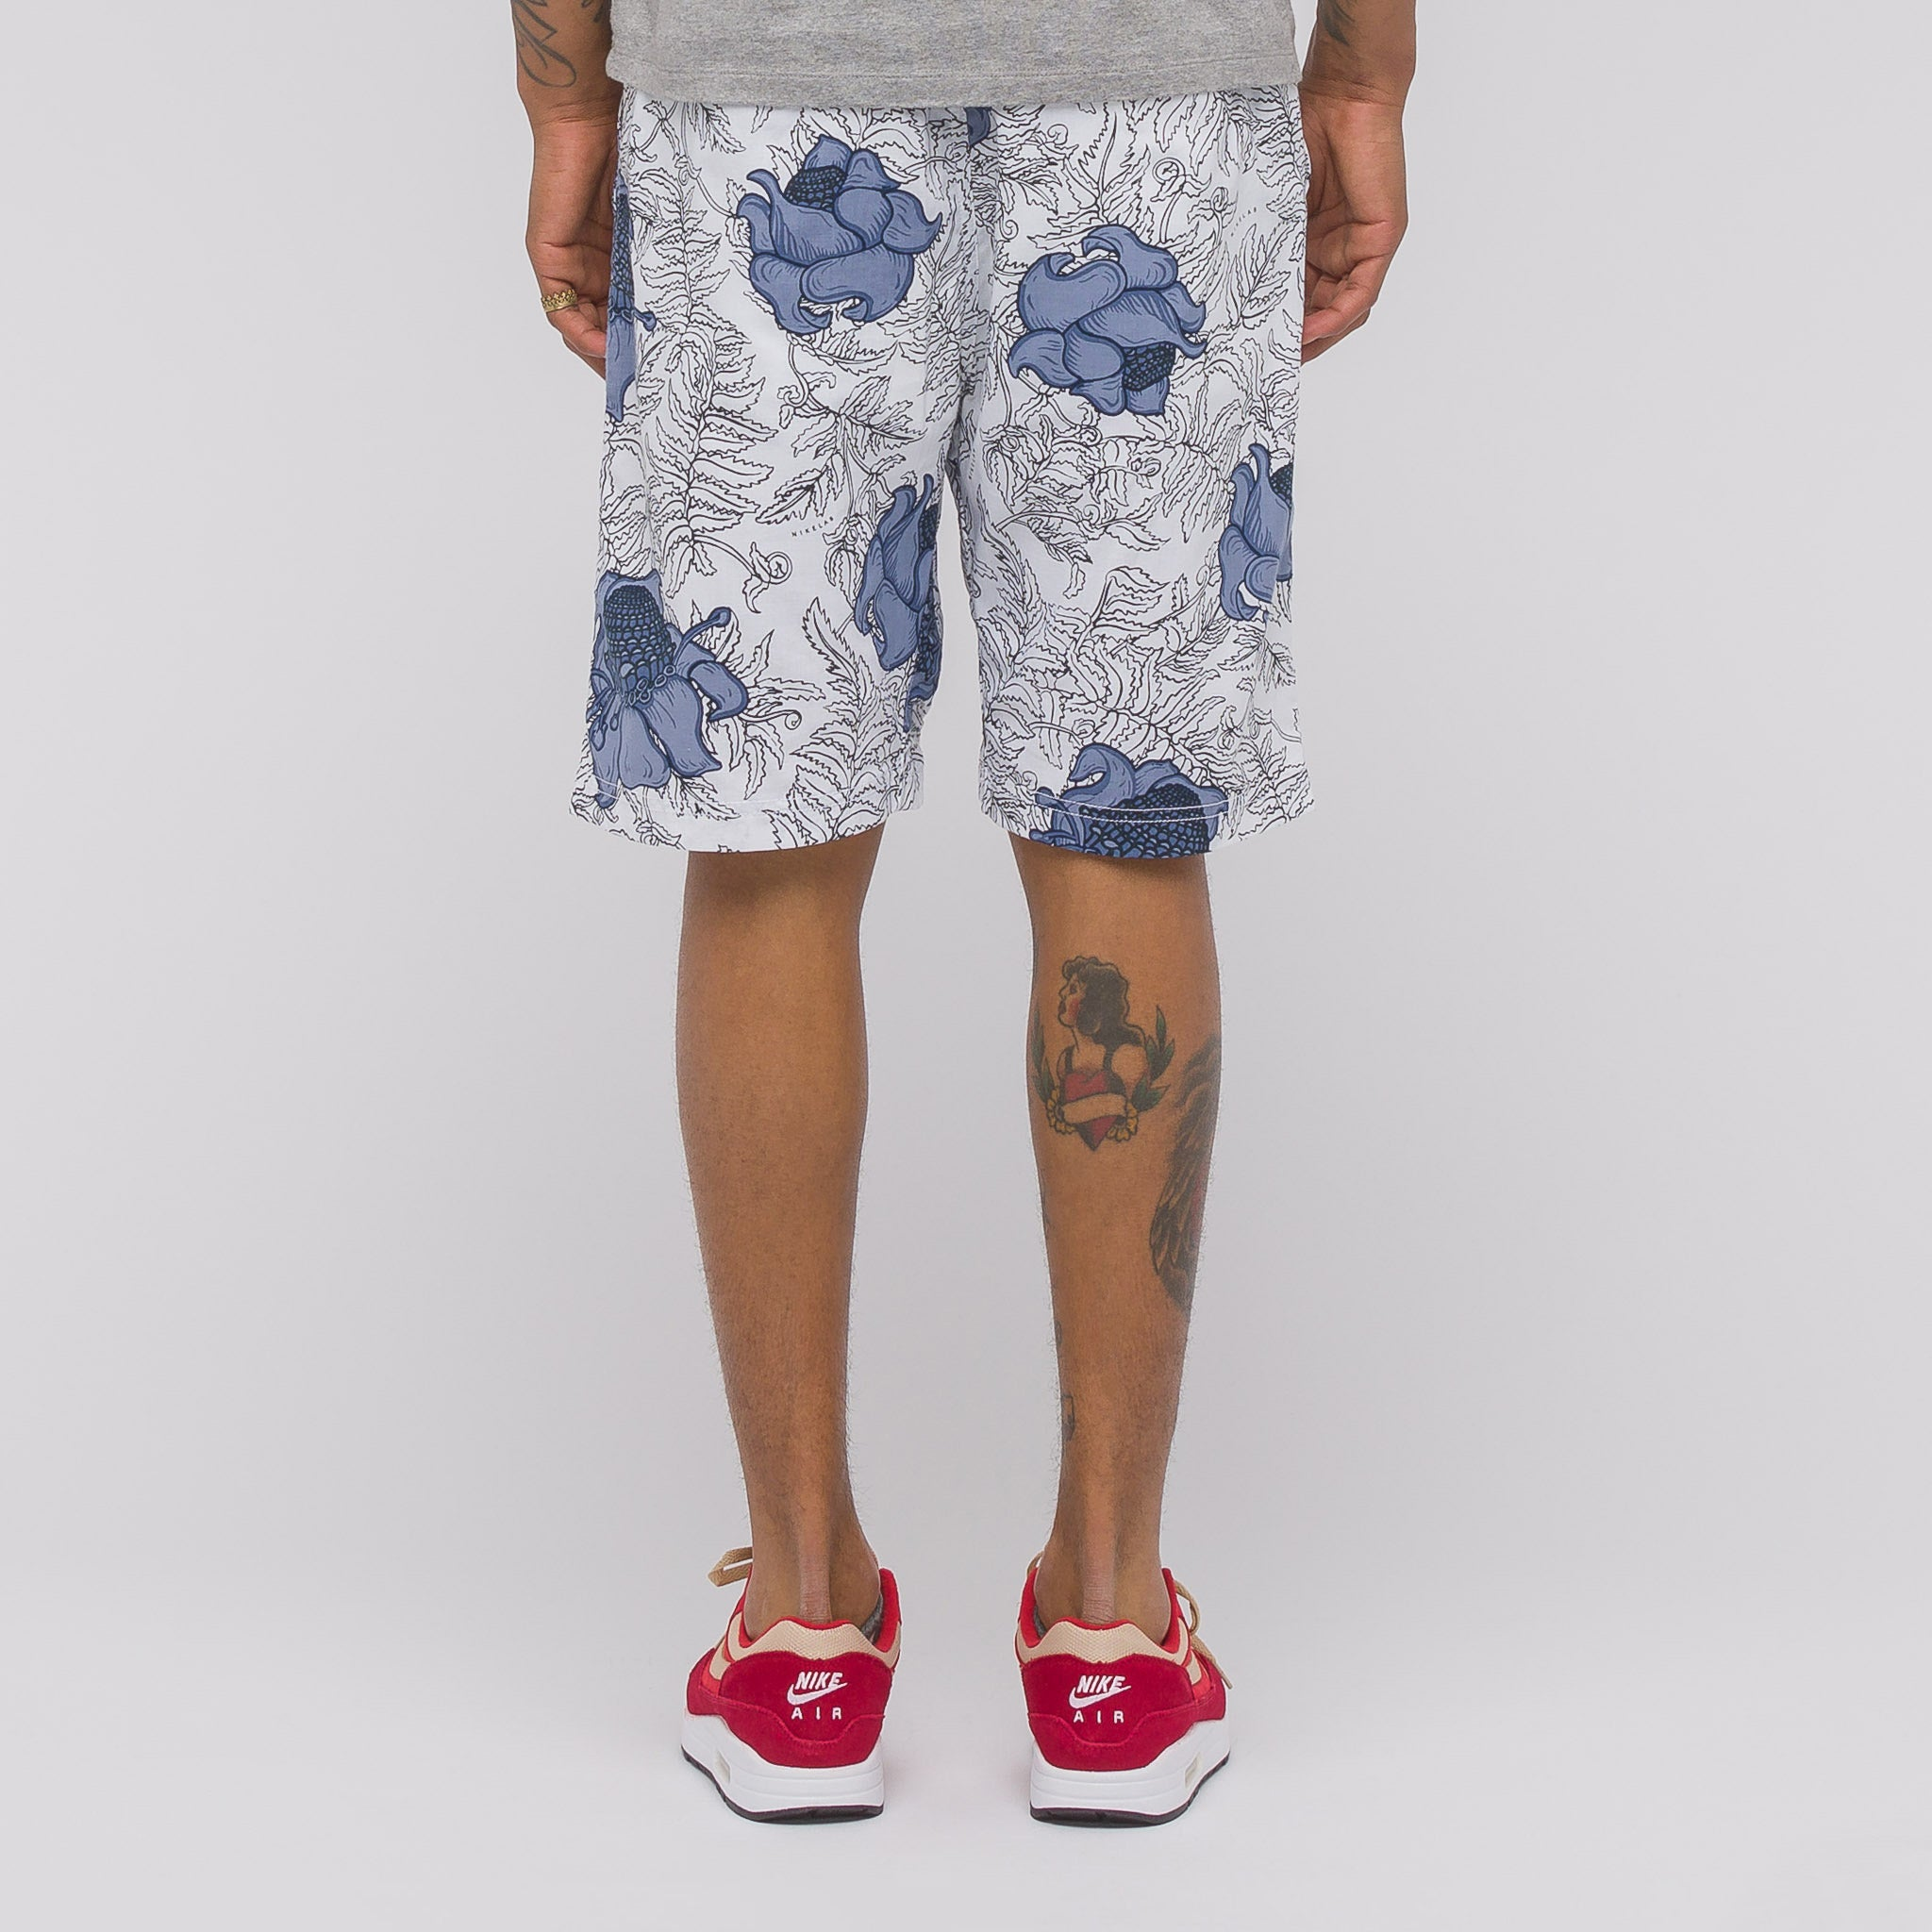 NRG Floral Short in White/Obsidian/Black